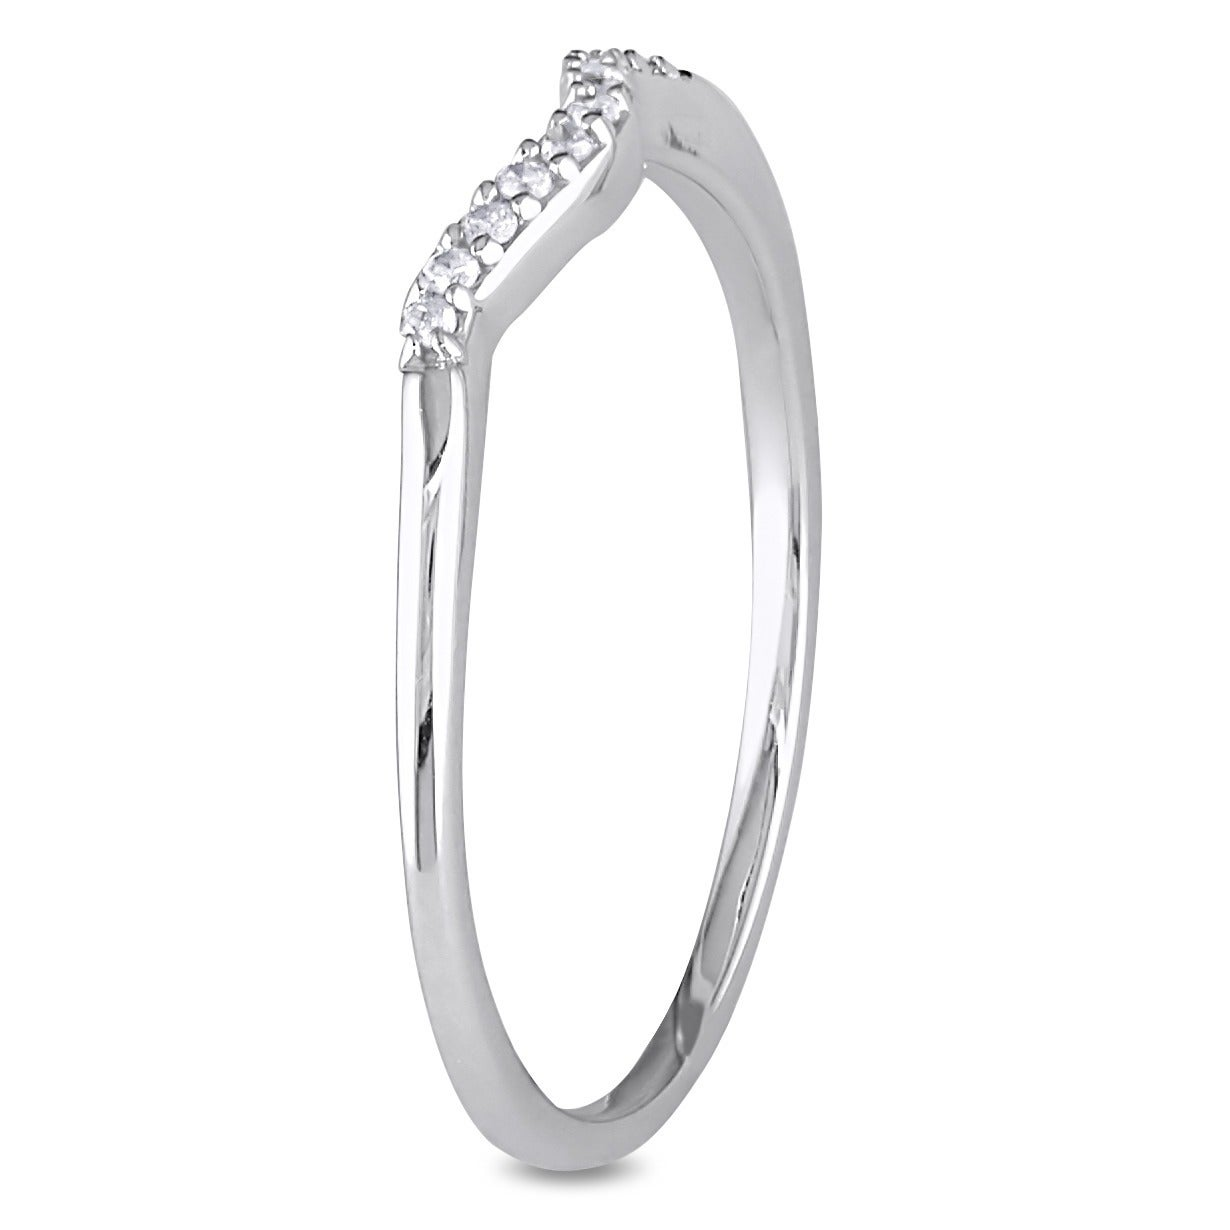 nature ewing ring olivia inspired twig bands band wedding curved contoured copy contour naples